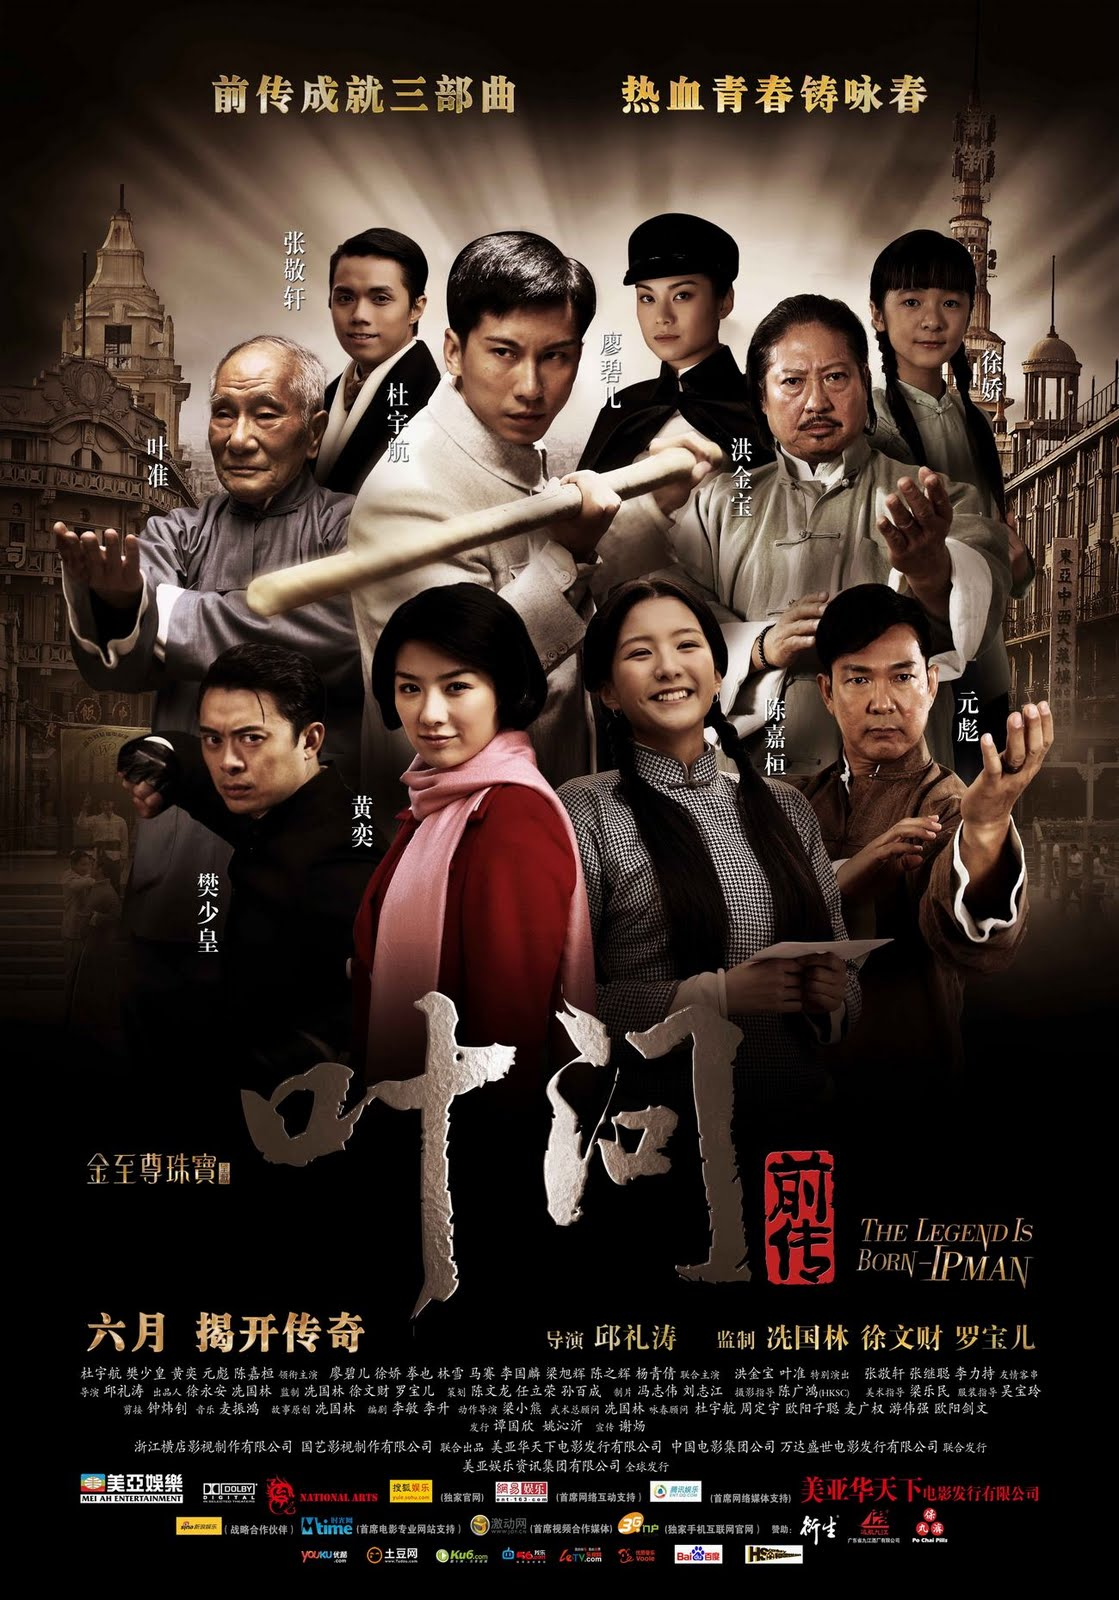 ip man 3 full movie download in hindi dubbed 480p